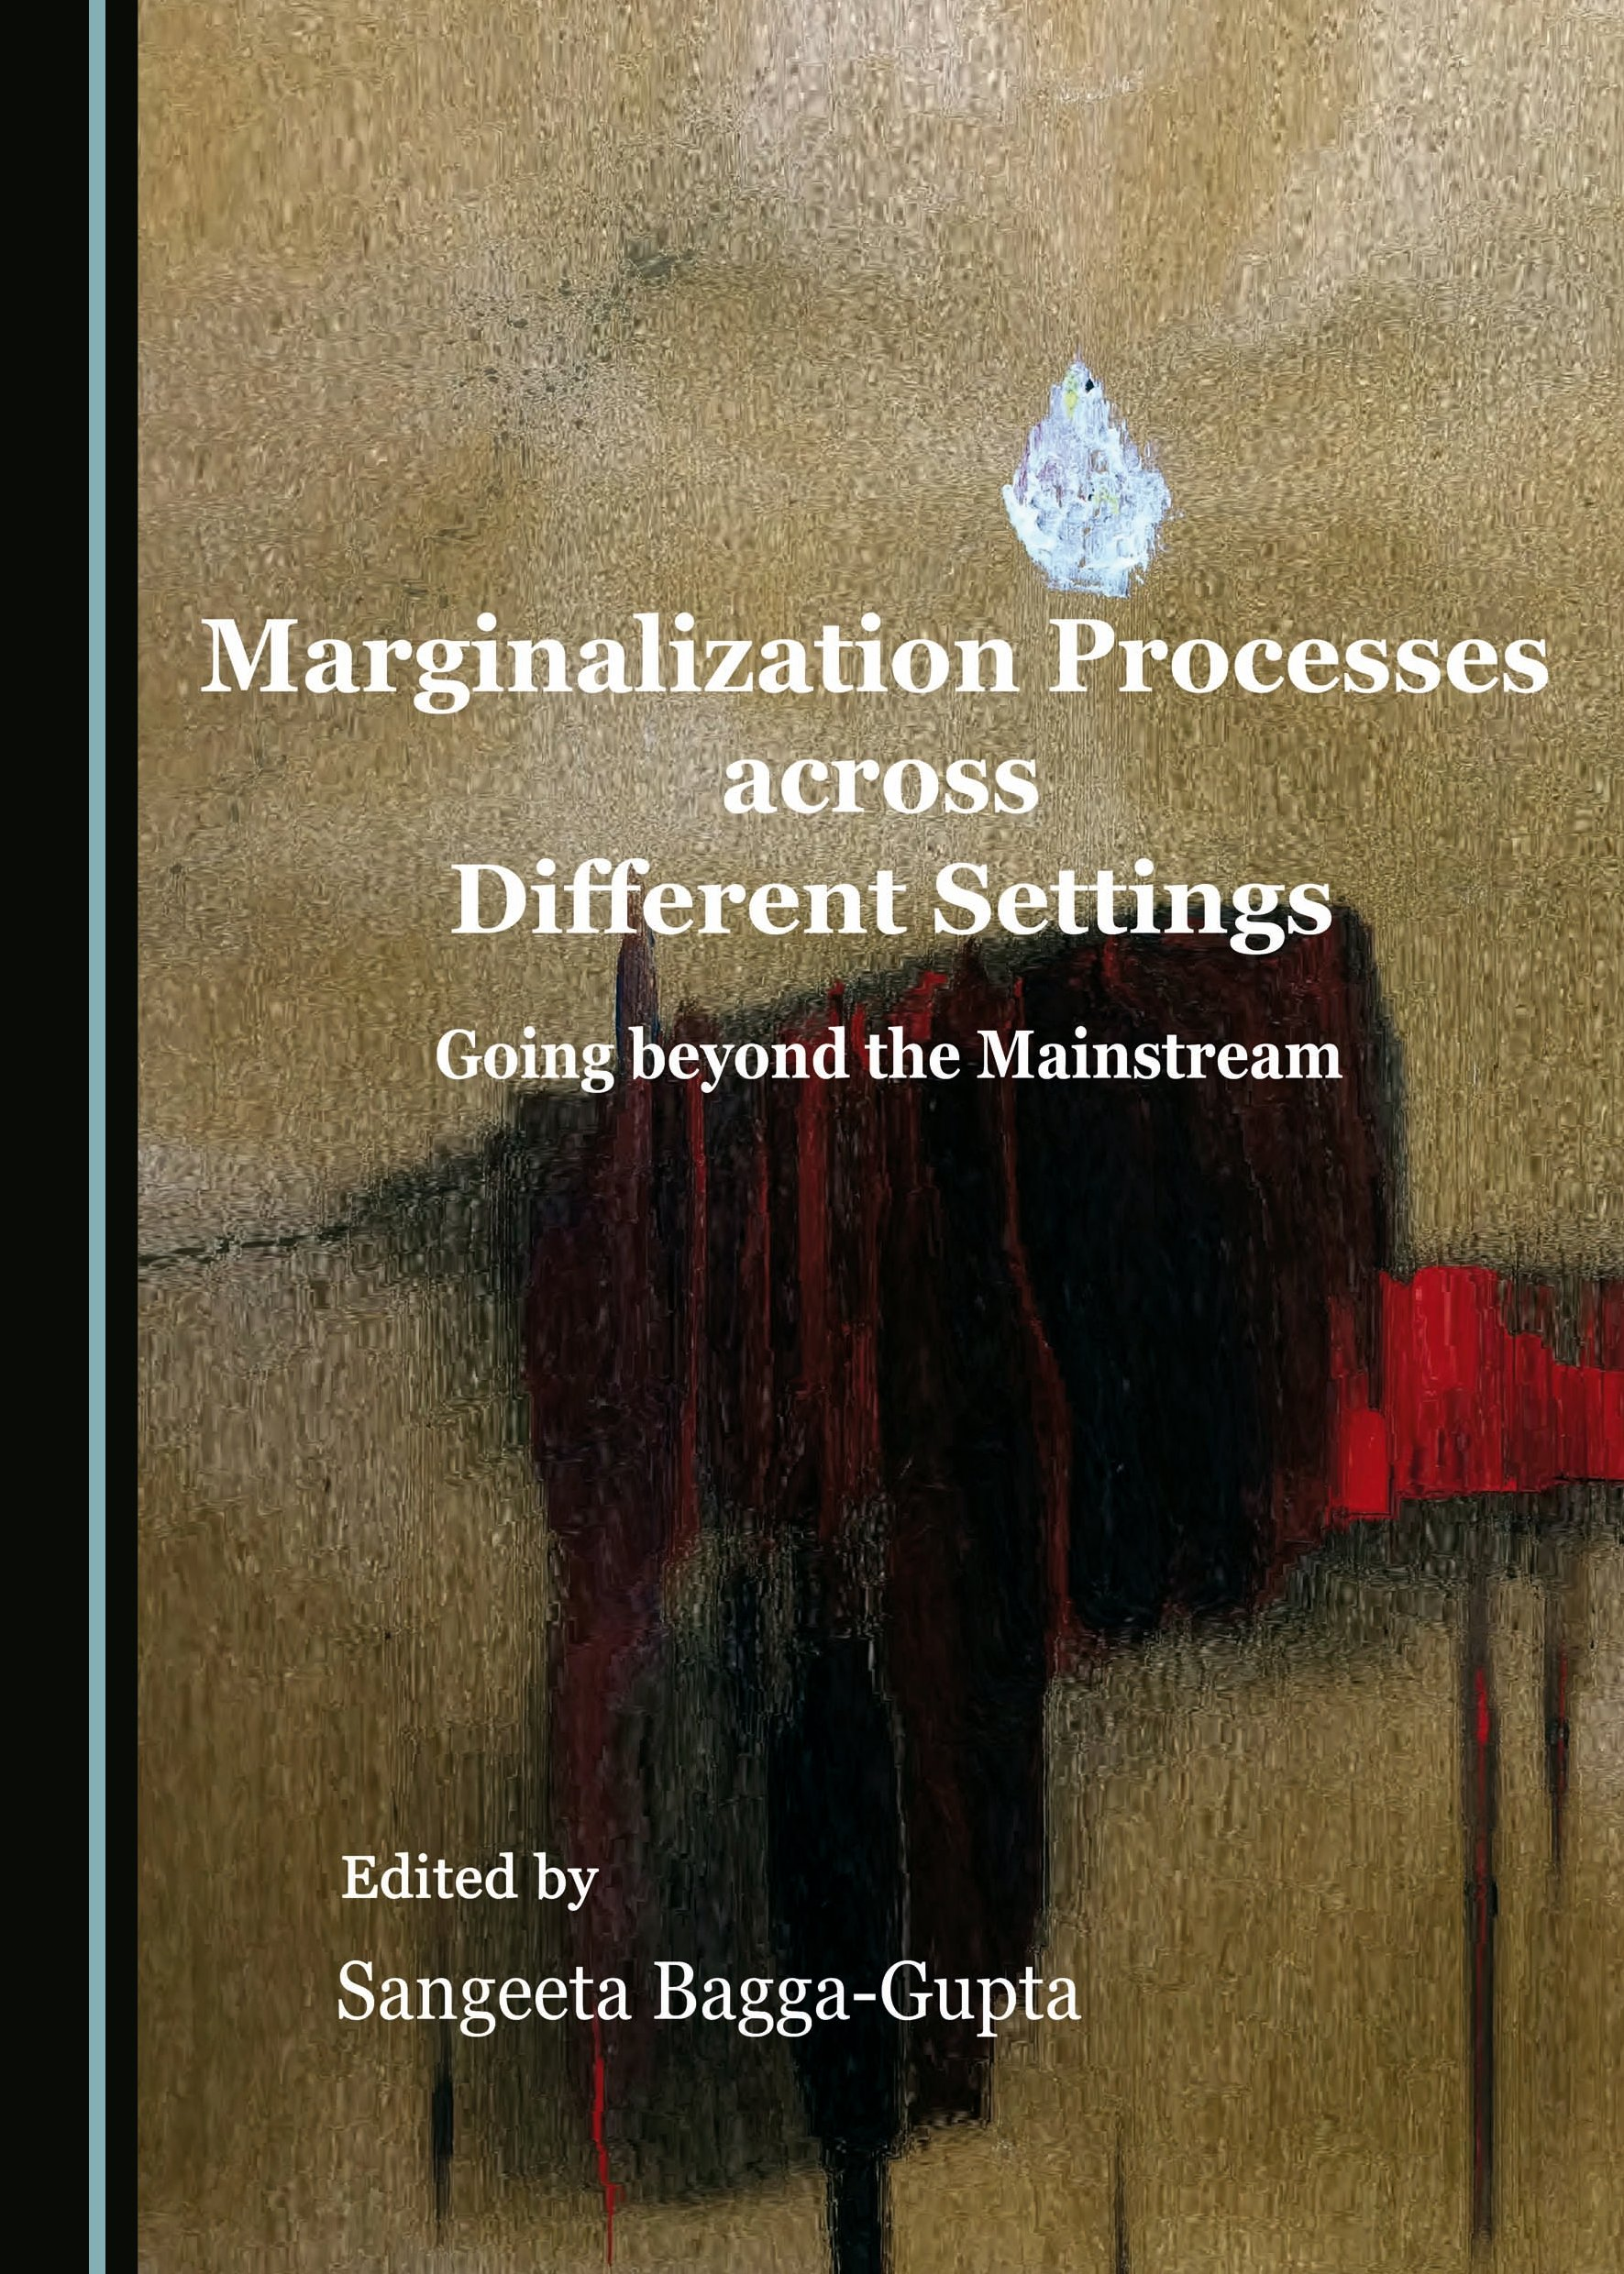 Marginalization Processes across Different Settings: Going beyond the Mainstream